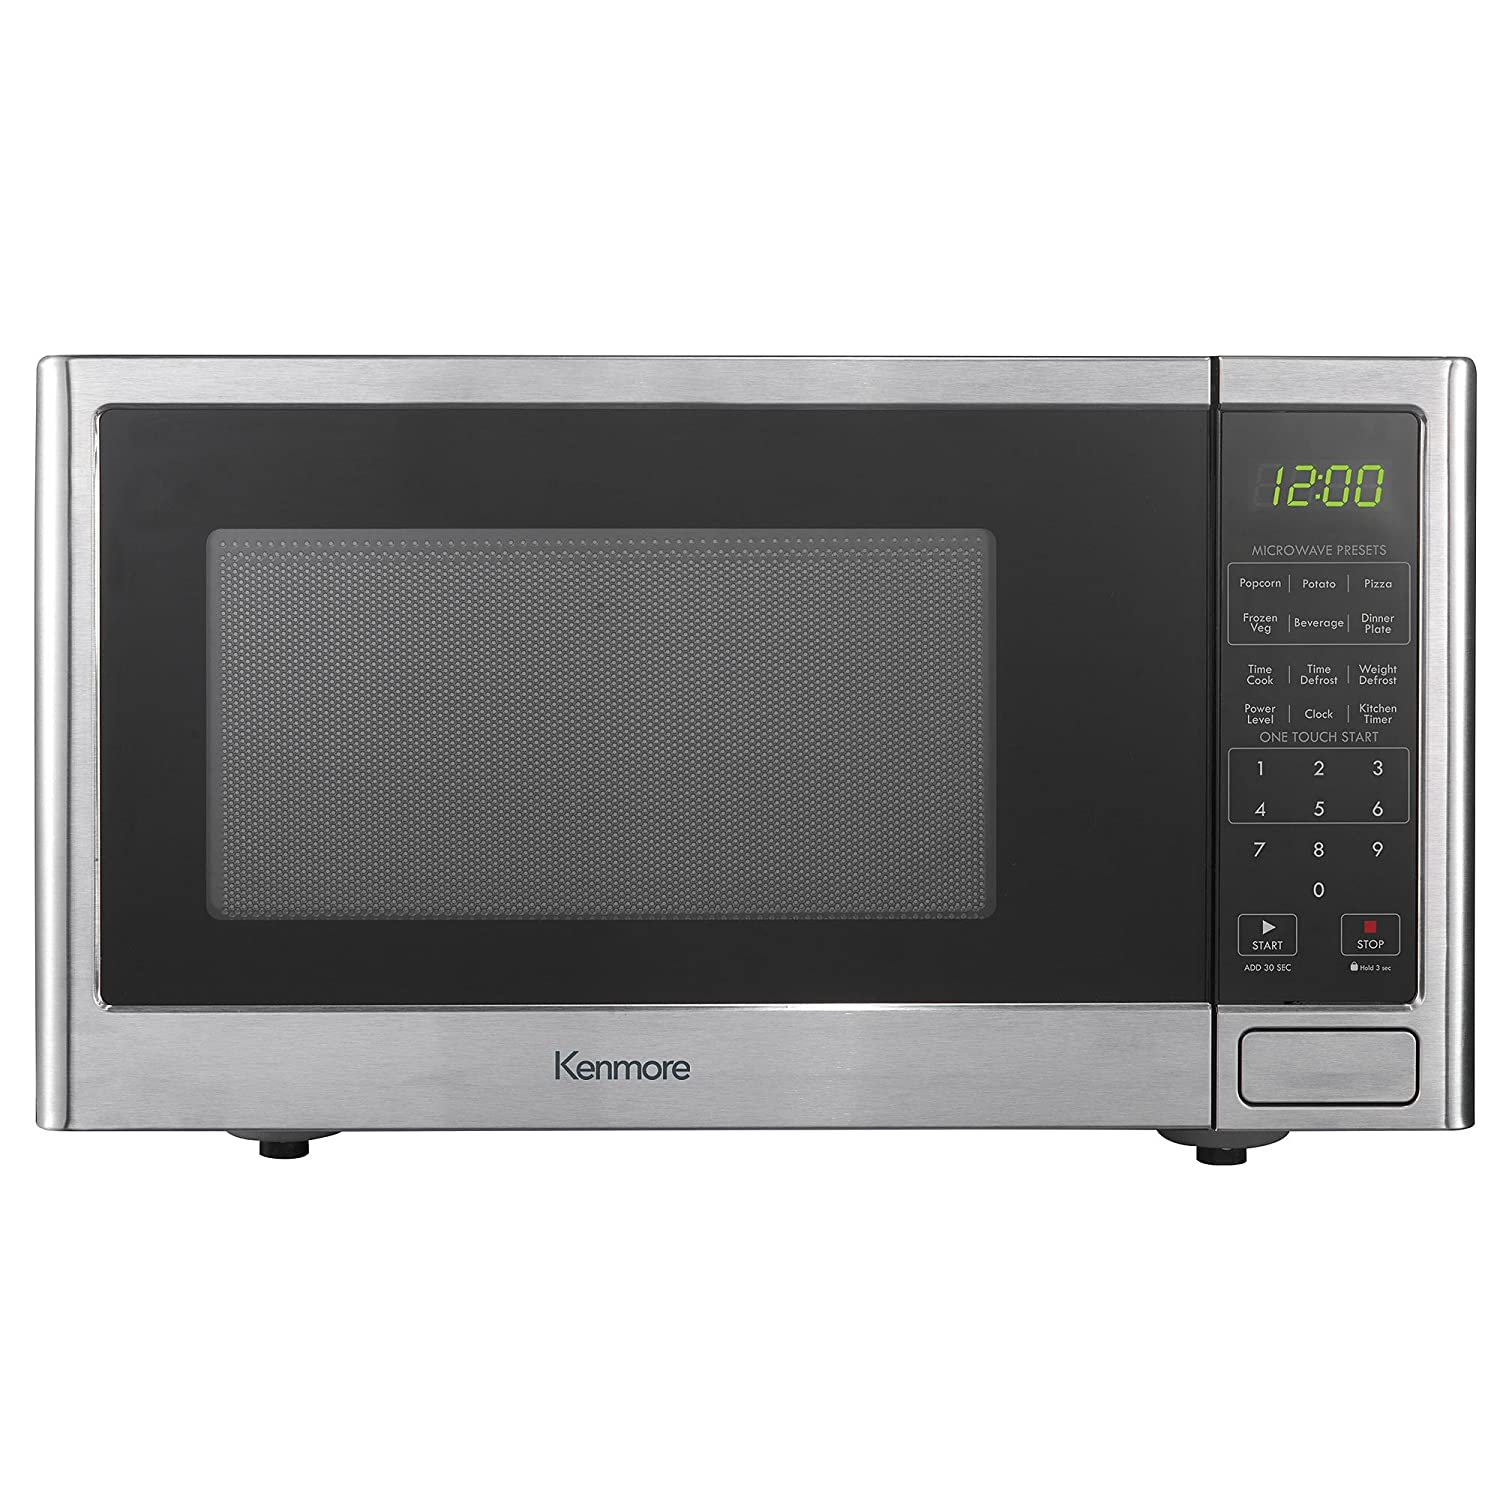 Amazon.com: Kenmore 0.9 cu. ft. Countertop Microwave Oven - Stainless  Steel: Kitchen & Dining